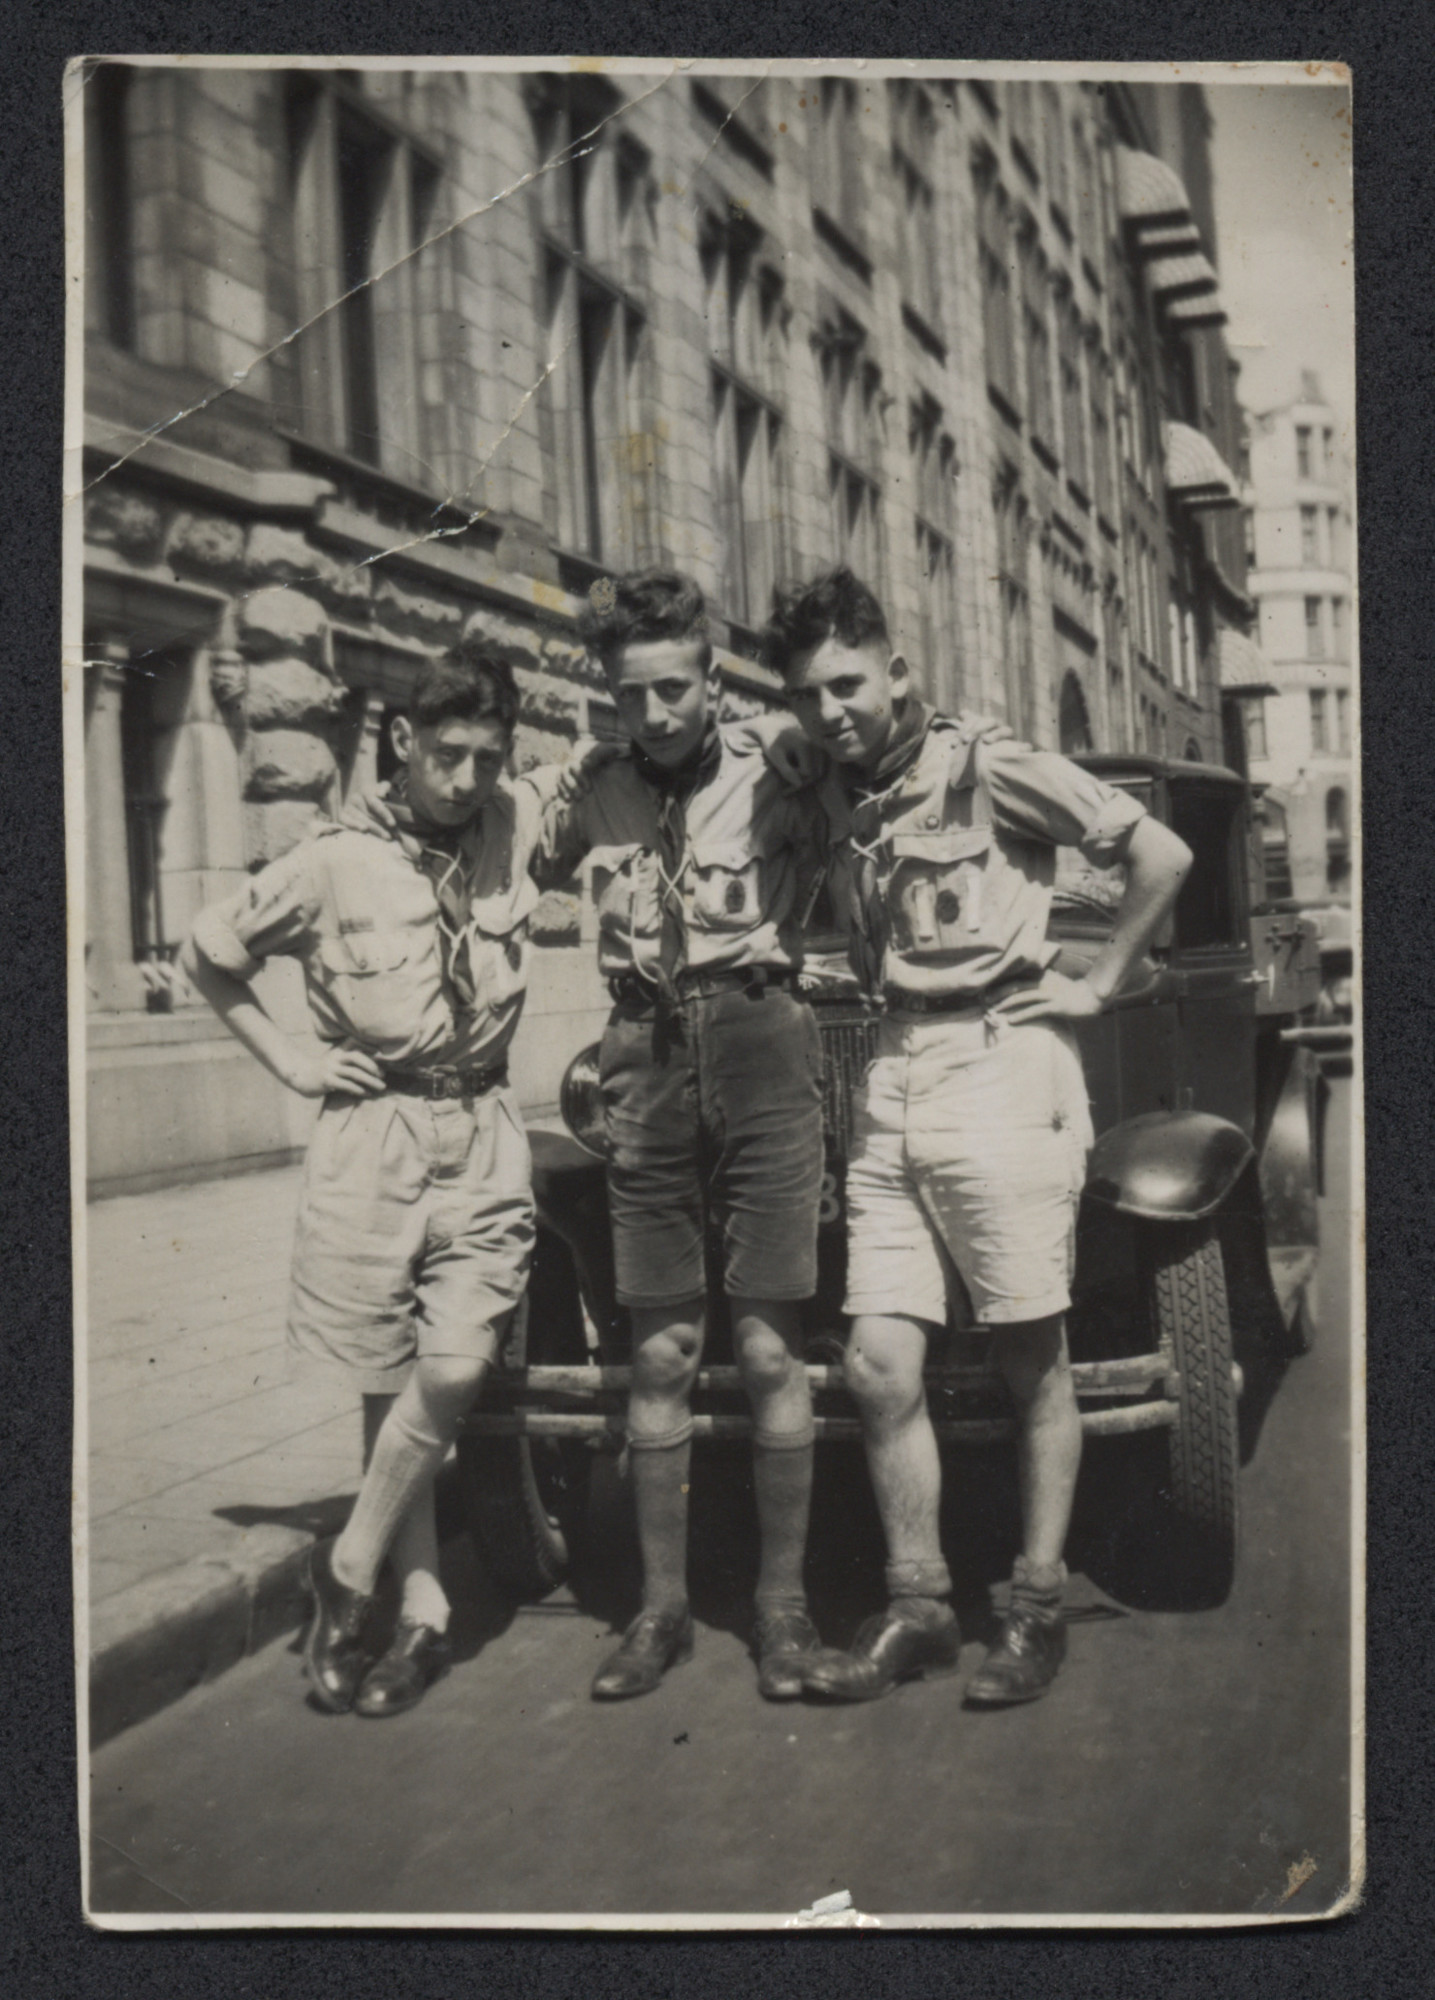 "Three boys in scouting uniforms pose on a city street.  Pictured on the right is Louis Moses.  The inscription on the back reads, ""Voor mama, Trektocht n. Wieringermeer 1947.  Amsterdam."" (For Mama, Hiking at  Wieringermeer 1947.  Amsterdam.)"